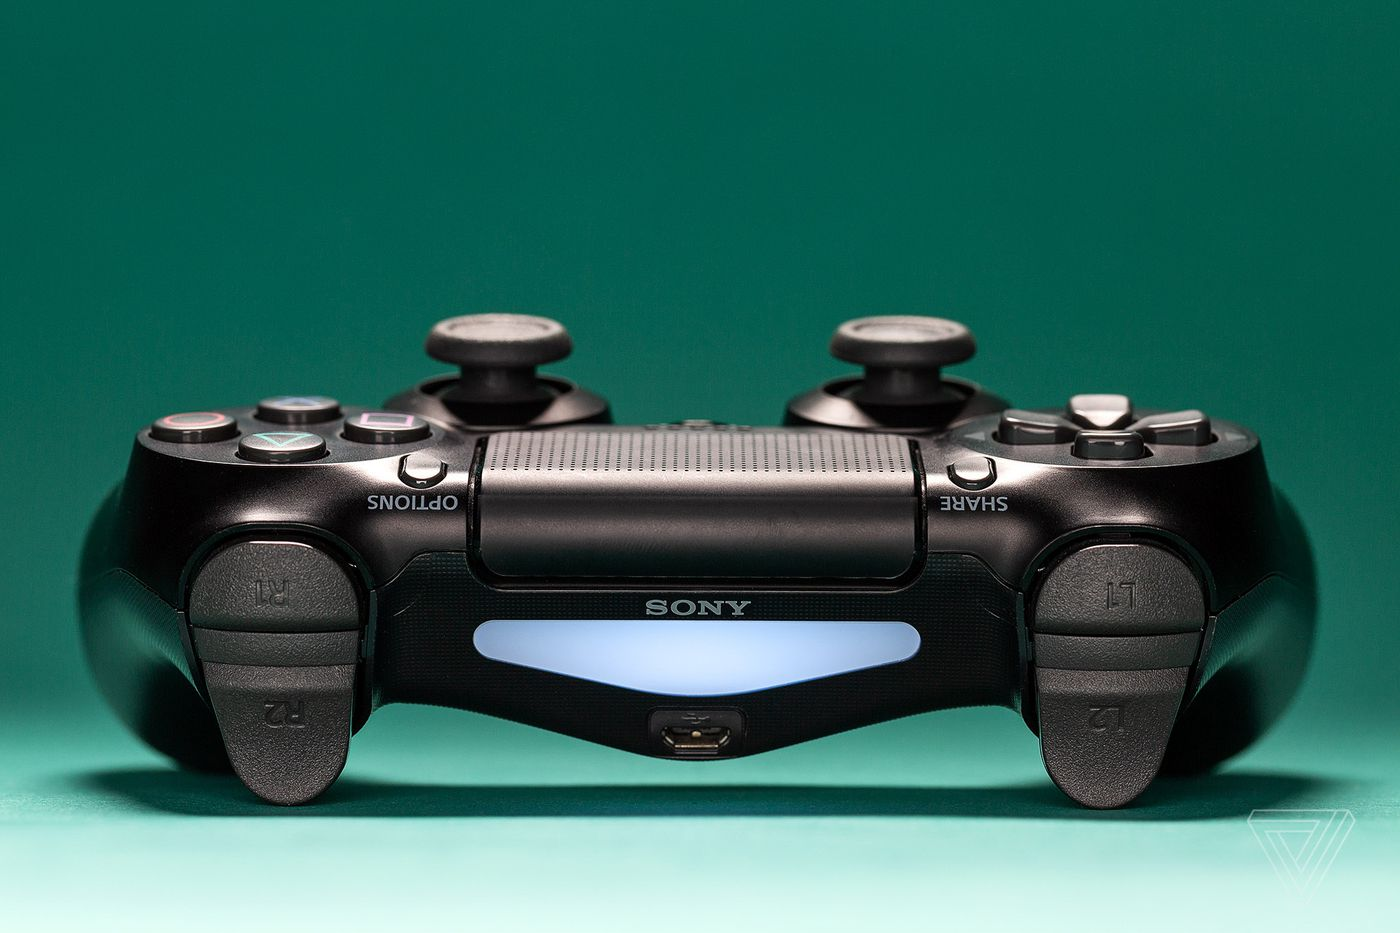 The PlayStation 4's touchpad and the law of unintended